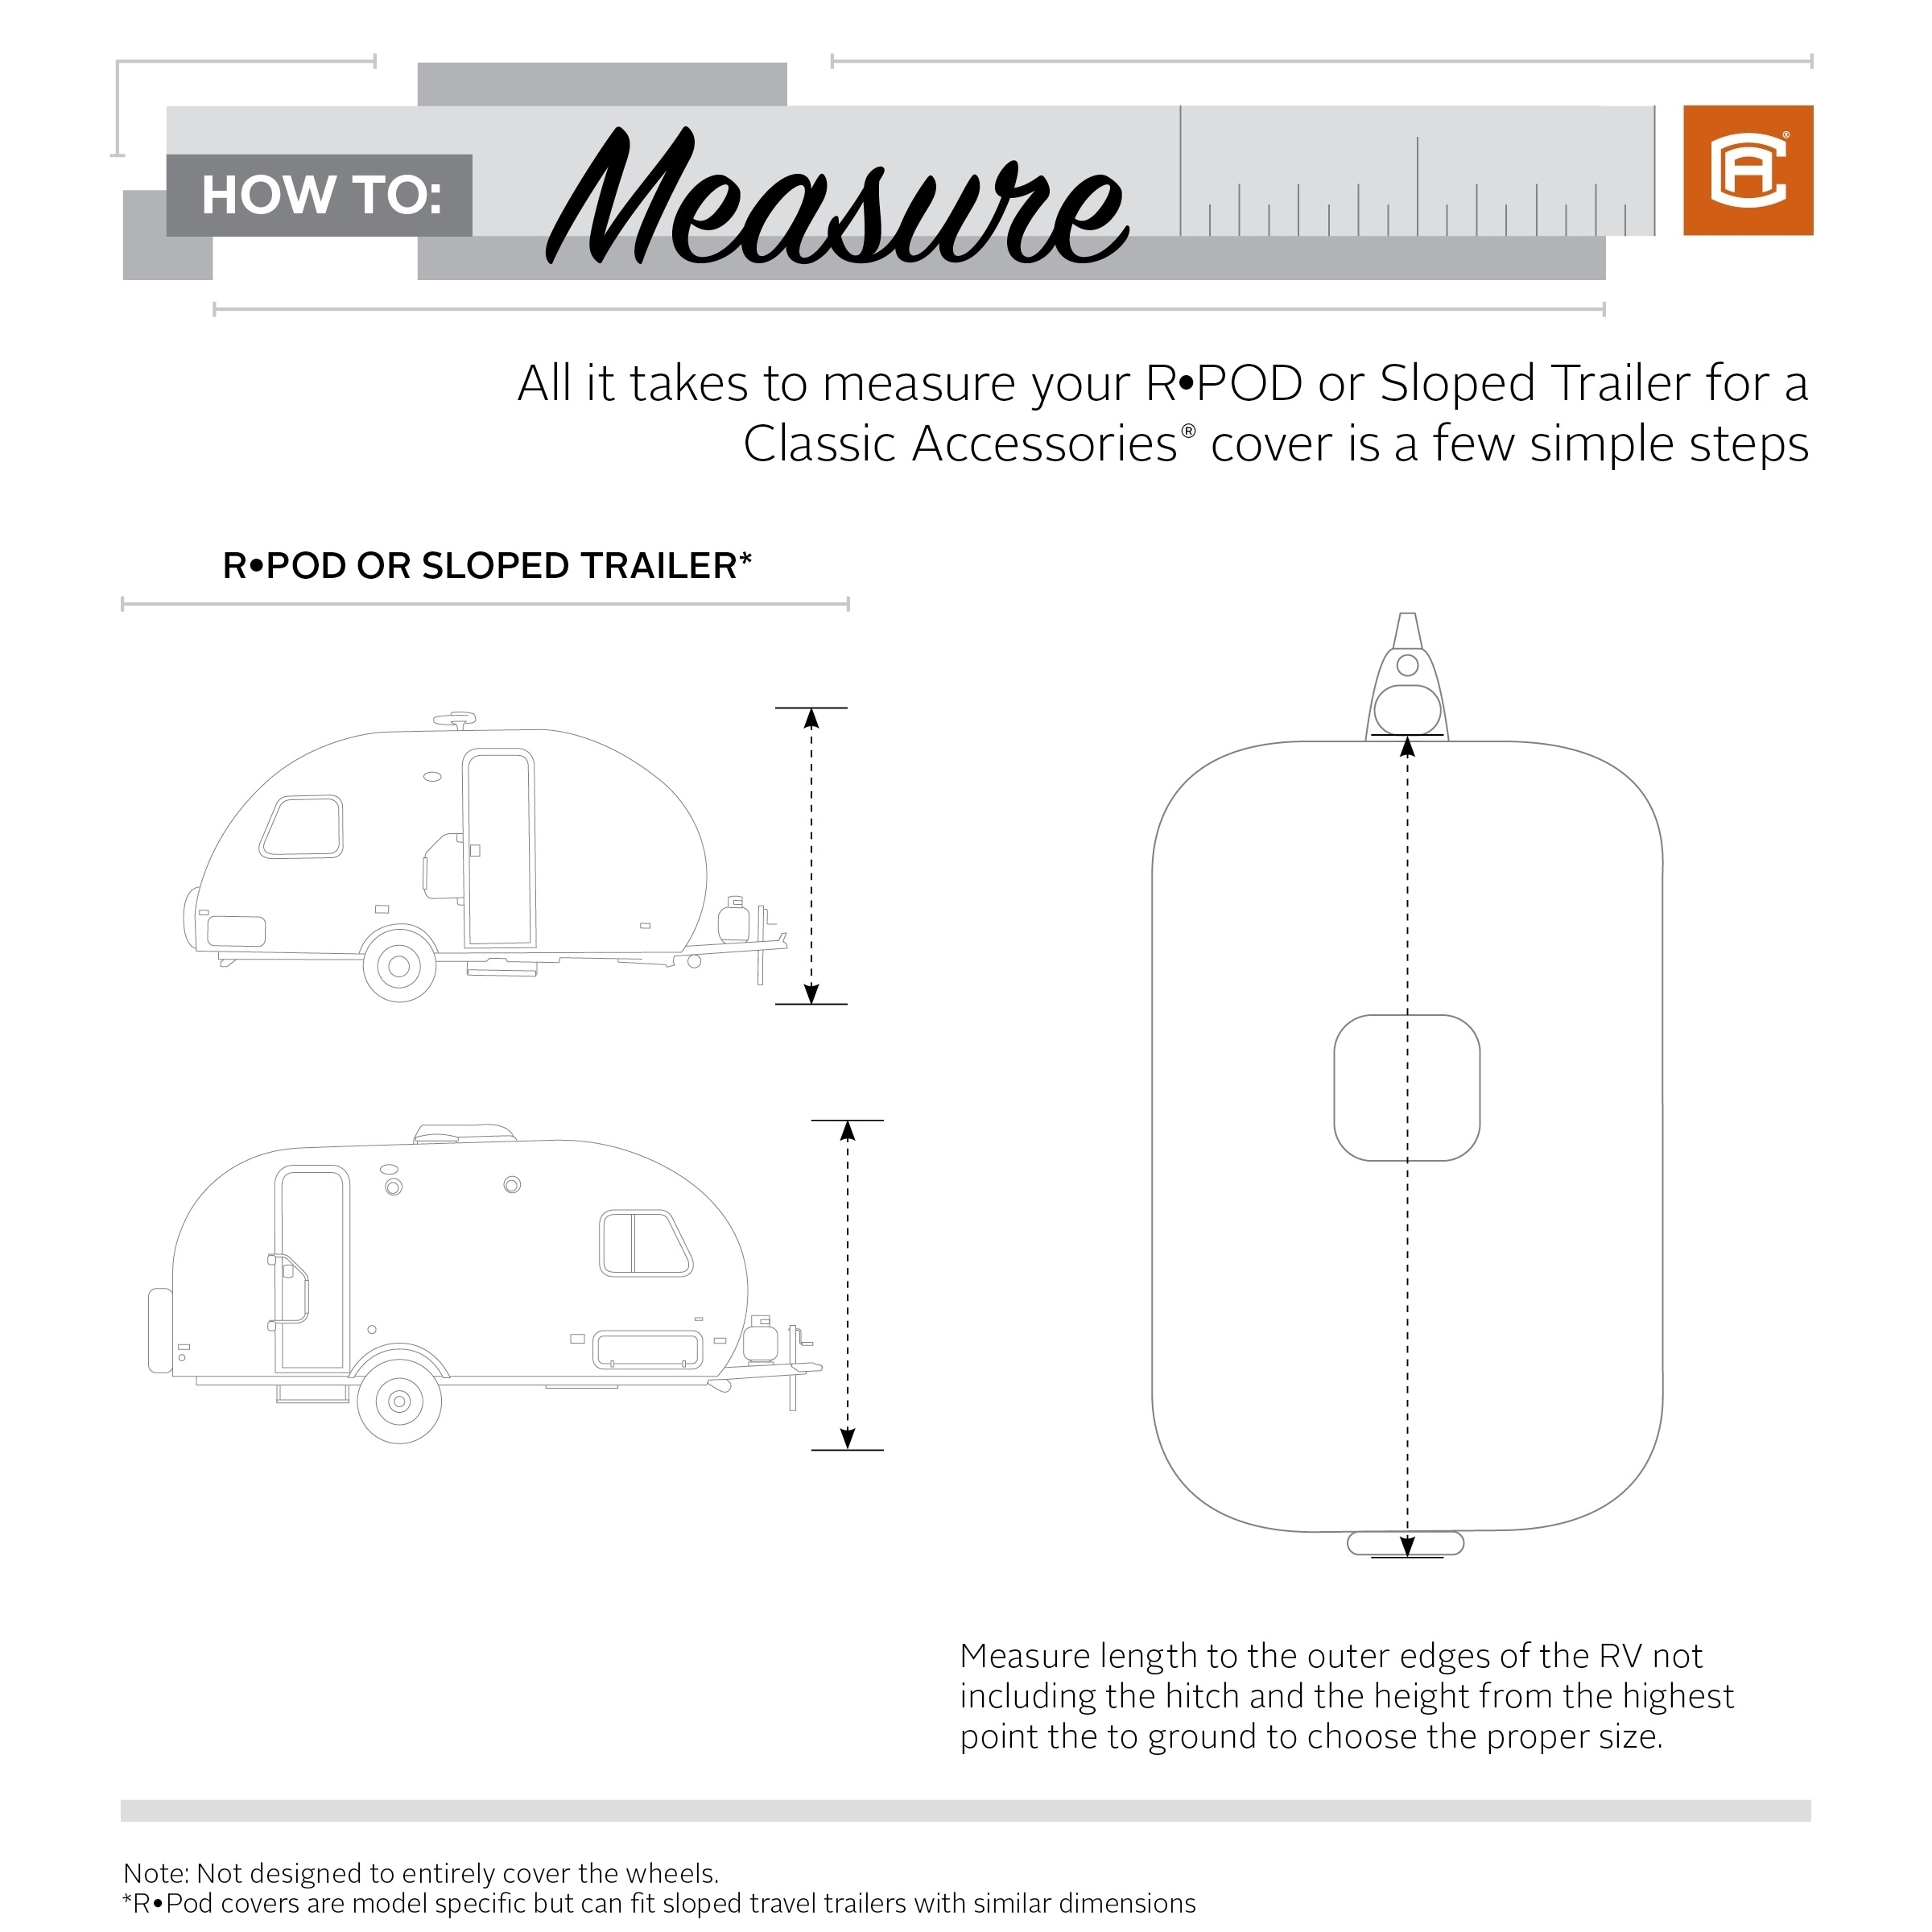 """Poly Pro 3 Teardrop Cover Fits R-Pod Fits up to 16/' 6/"""" Length Trailer"""